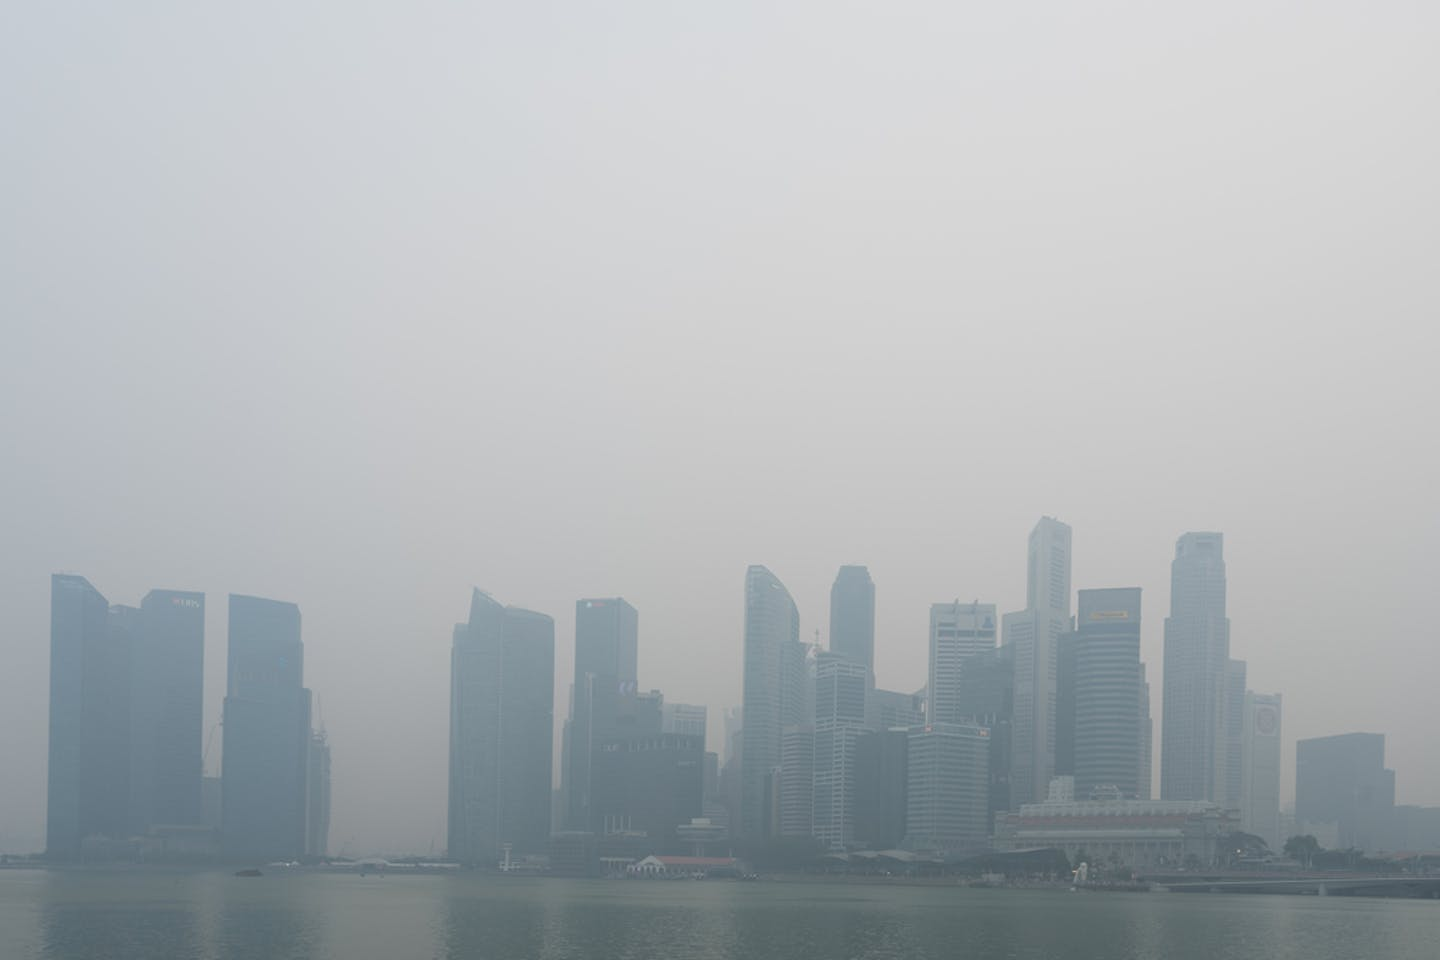 haze singapore's CBD skyline